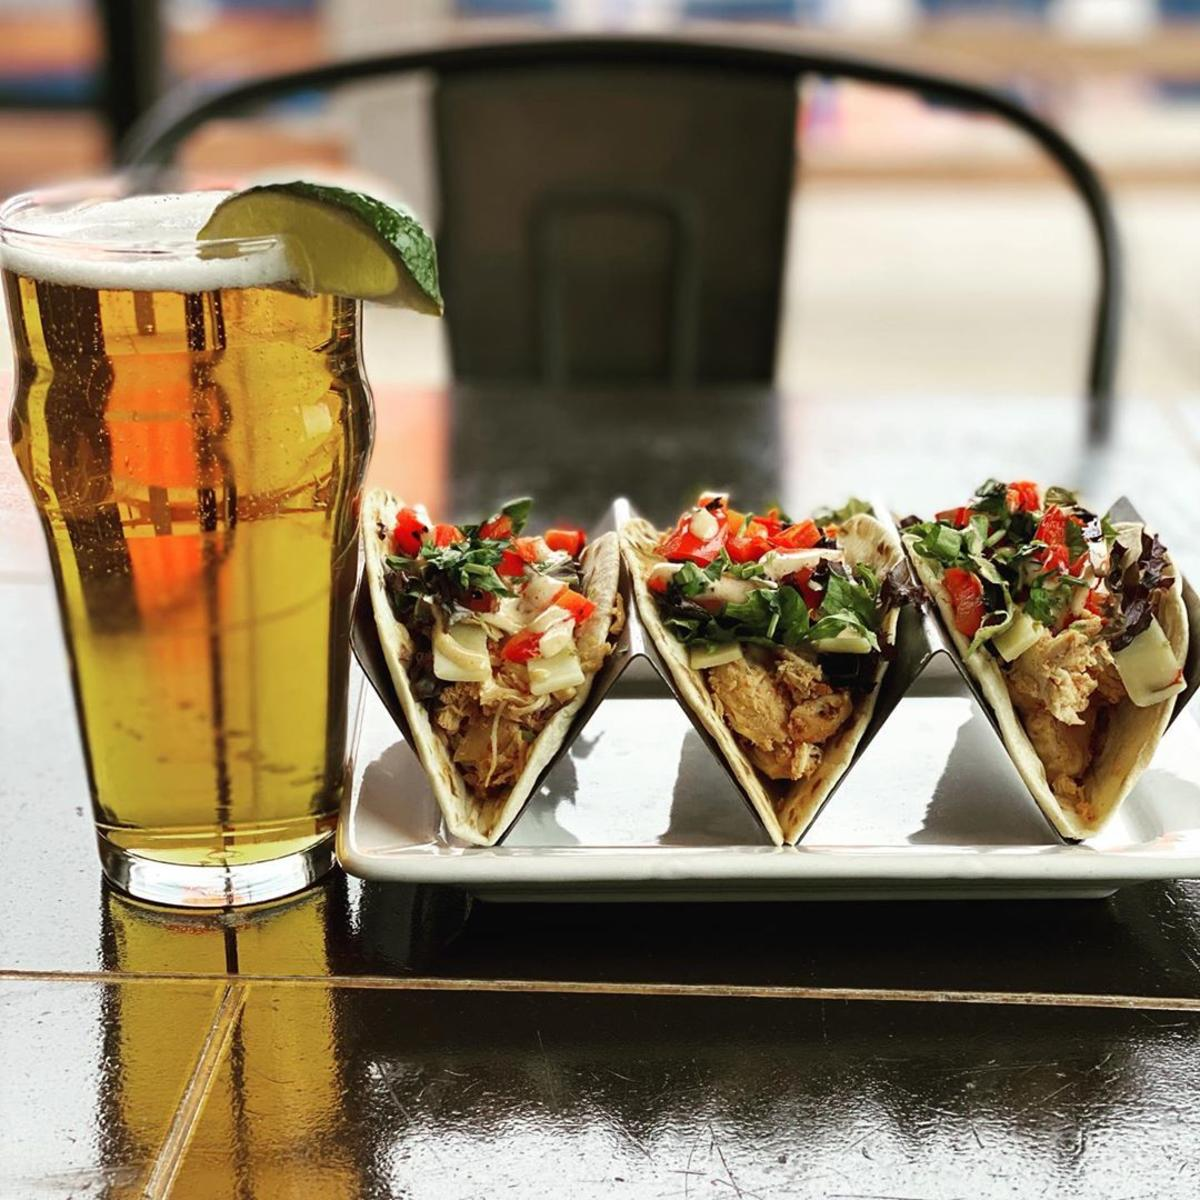 Chef's taco features beautifully presented next to a draft beer garnished with lime at Tavern 101 in Bay City